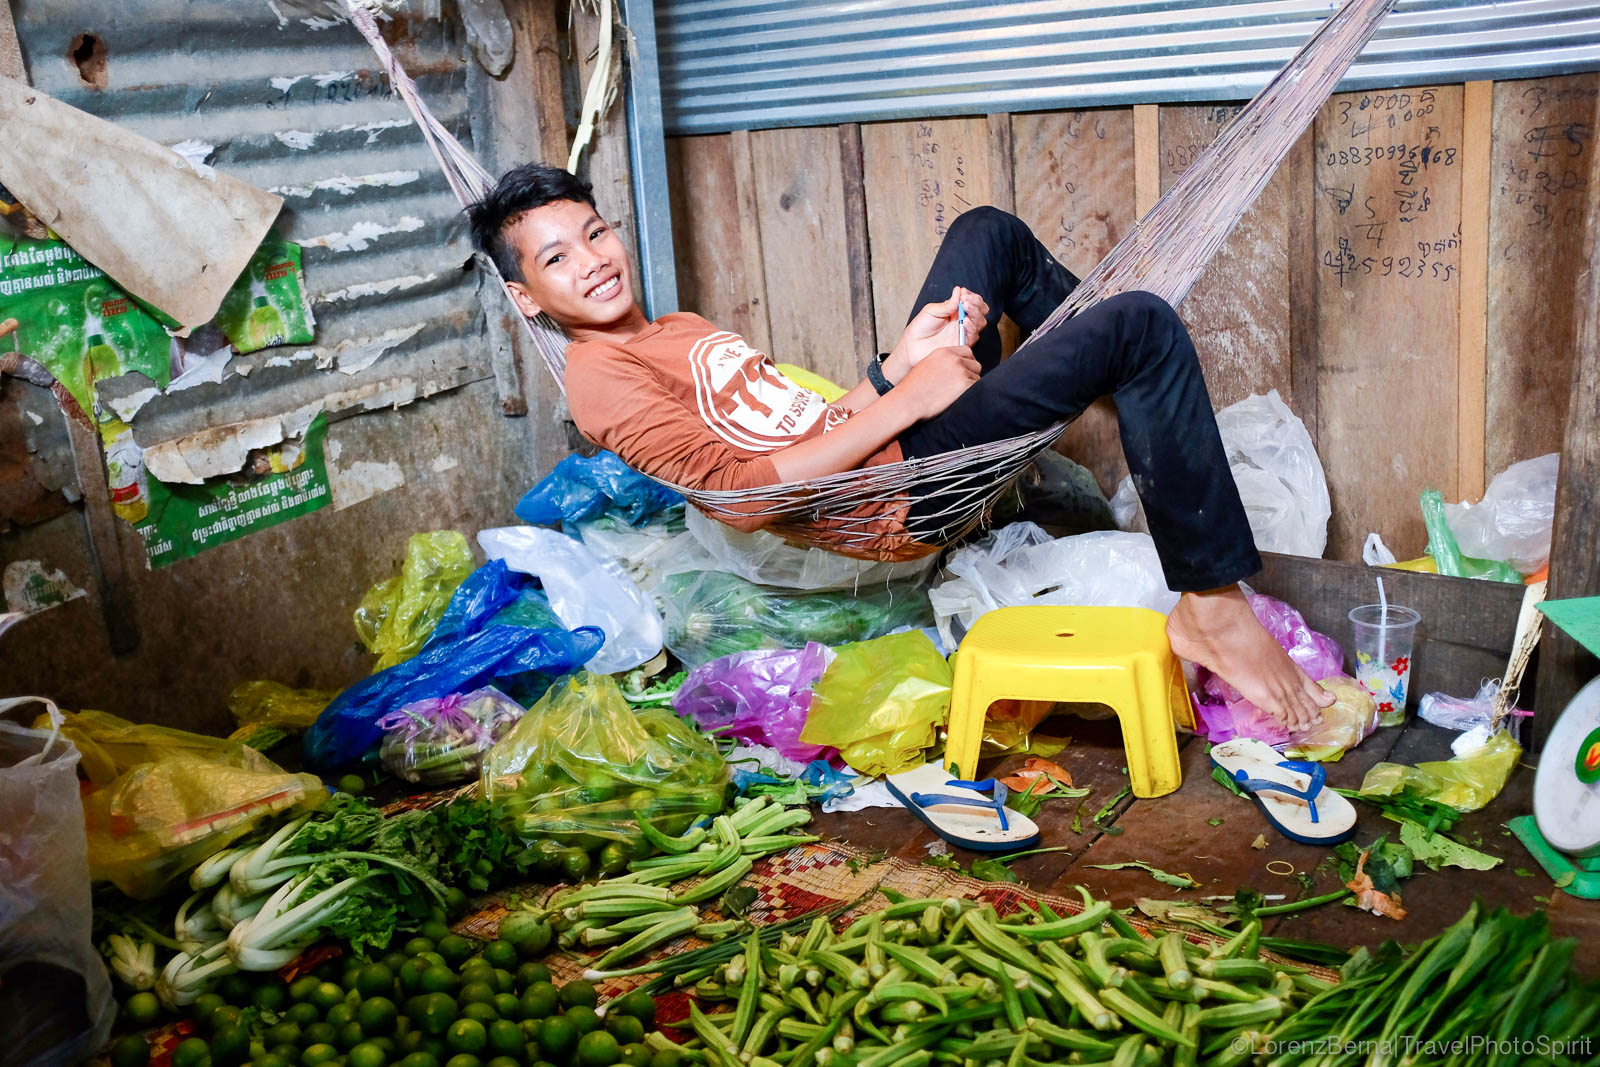 Seller boy in a hammock in a market stall, Cambodia